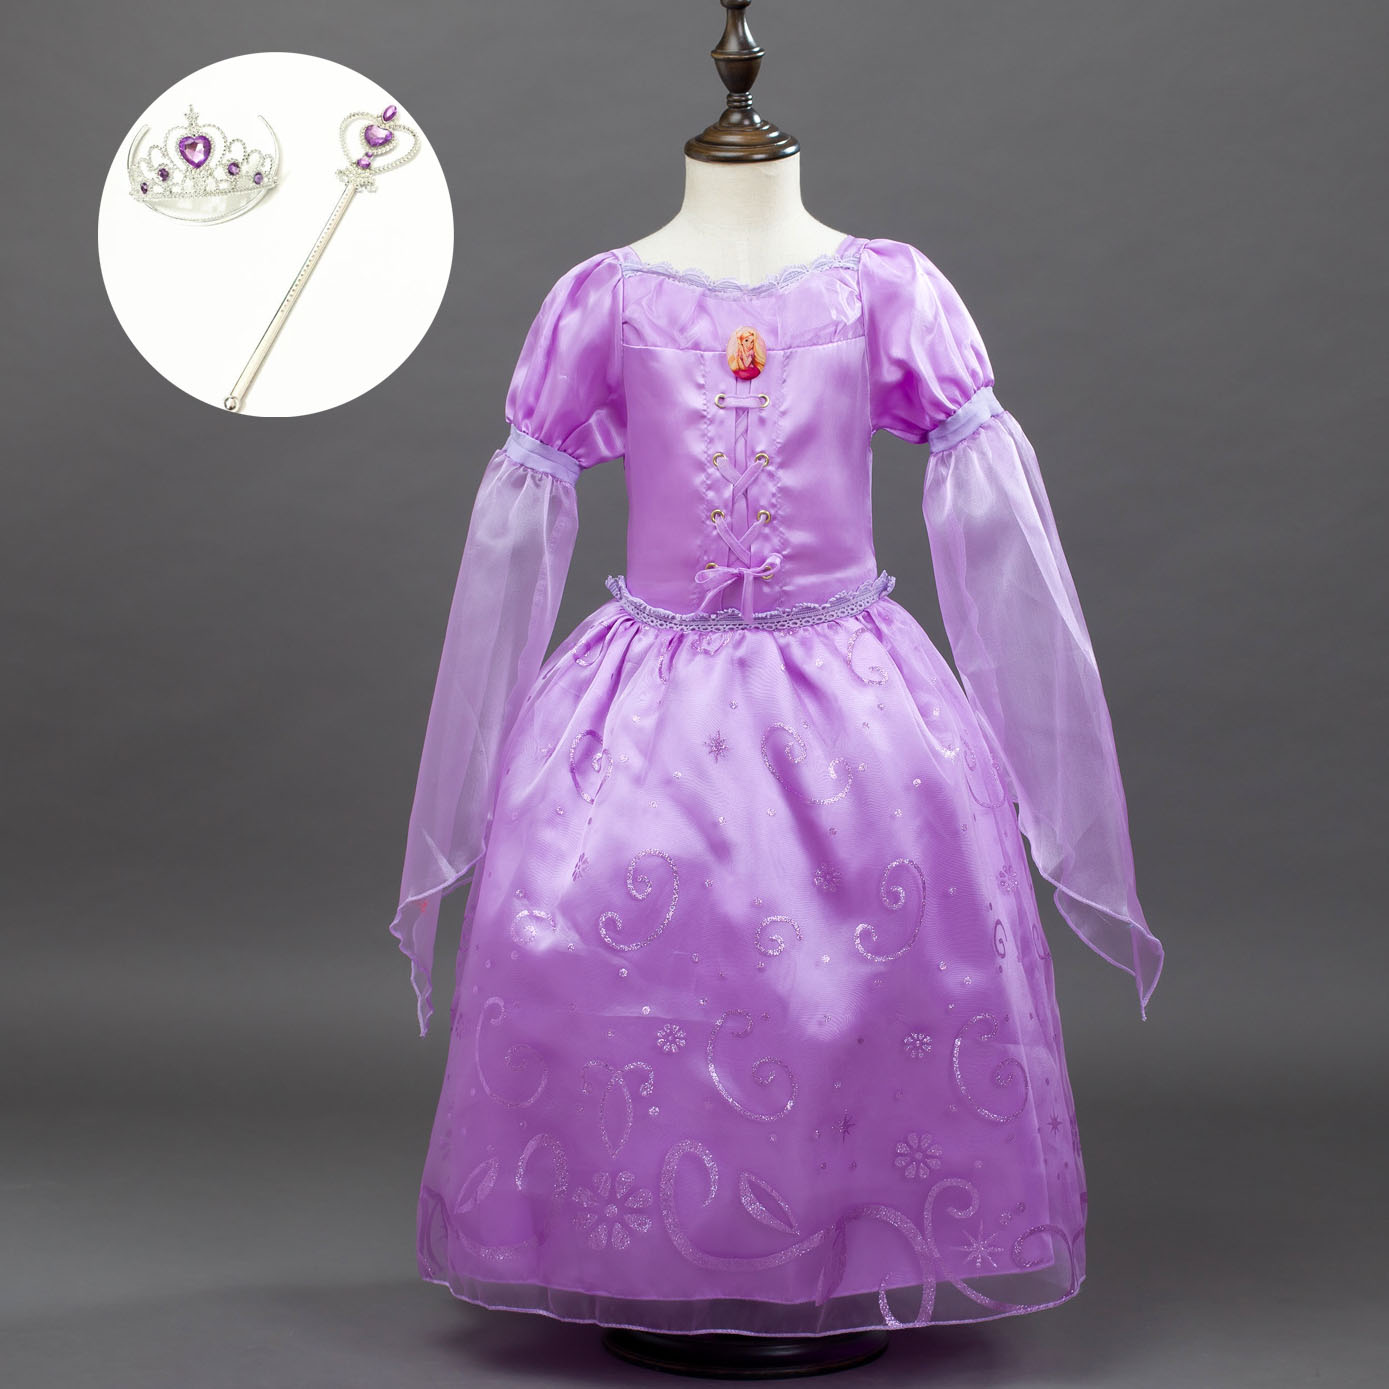 Fashion 3/4 Flare Sleeve Toddler Baby Girls Party Wear Kids Dress Halloween Carnival Princess Birthday Tangled Rapunzel Costume